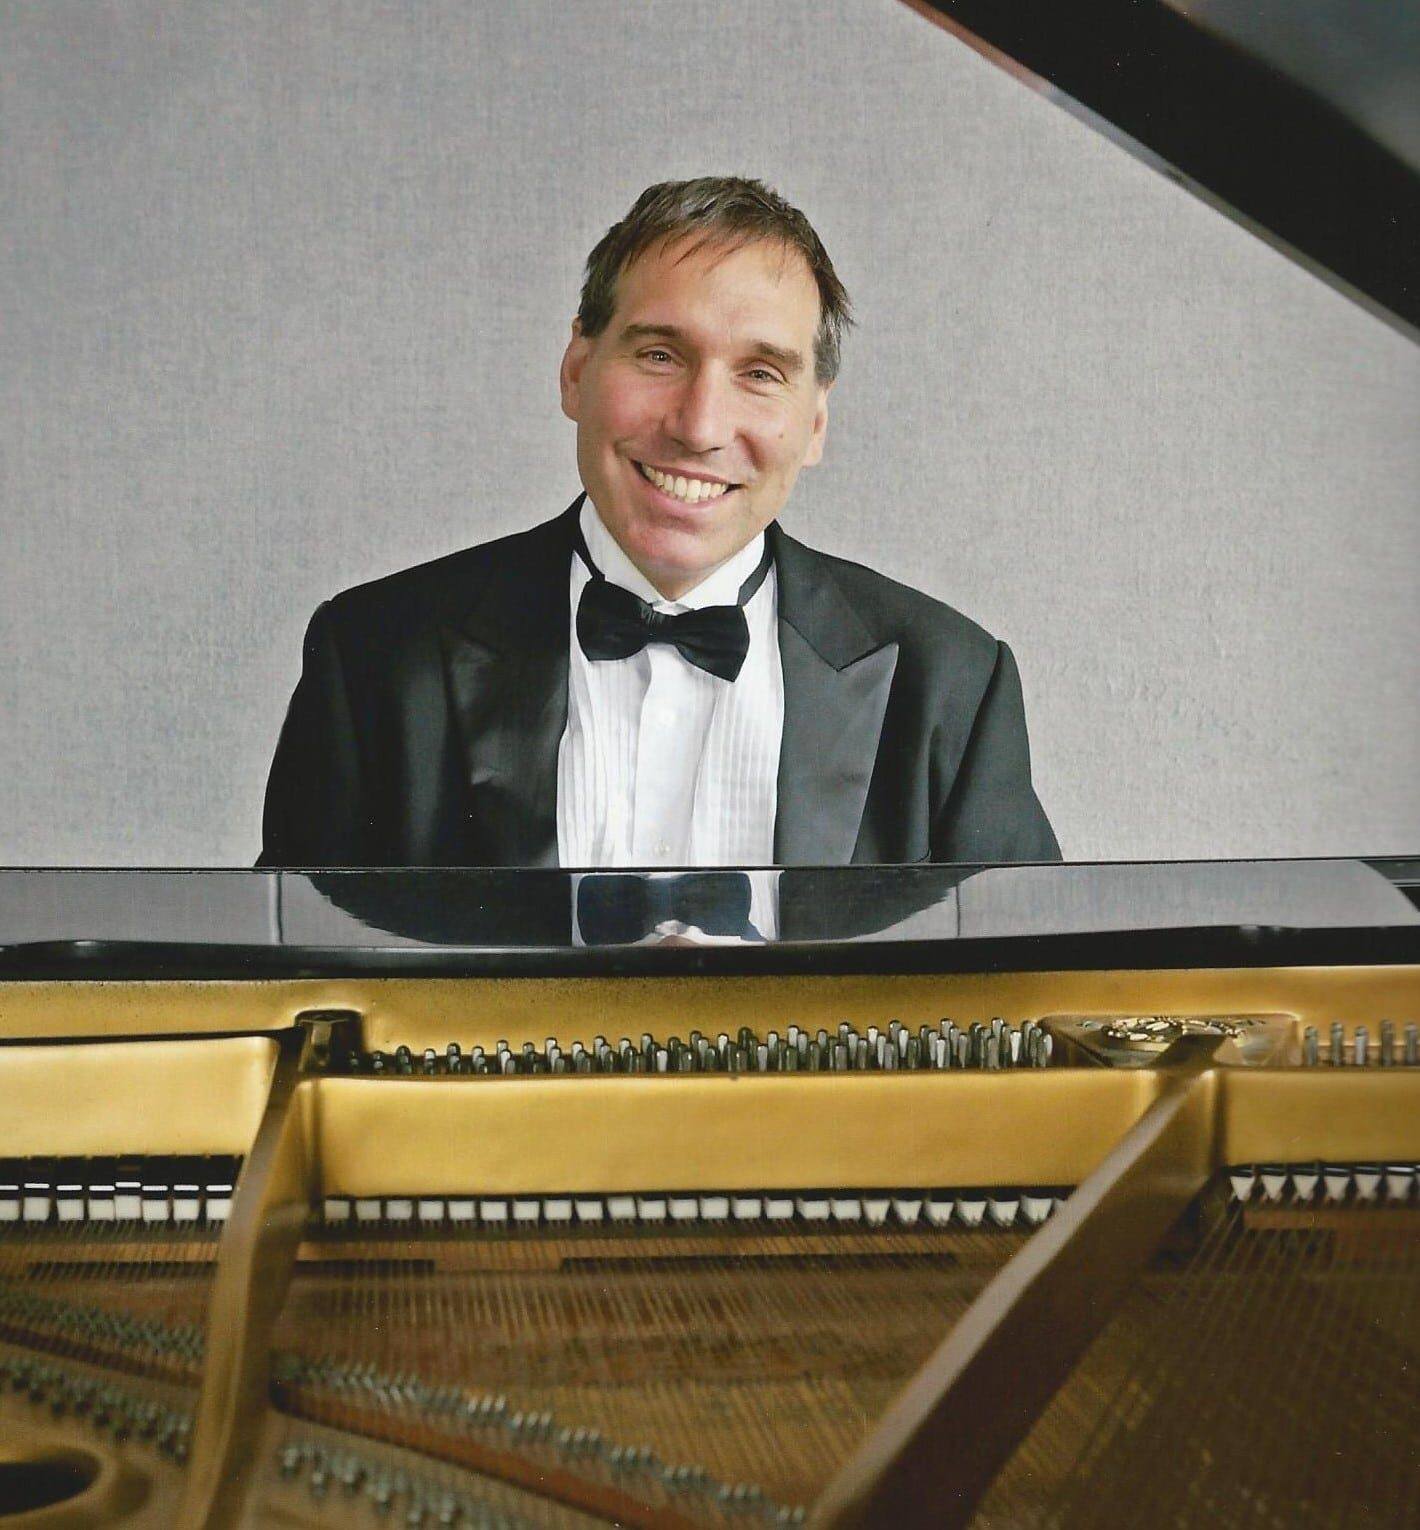 Pianist Frédéric Lacroix smiling at the piano